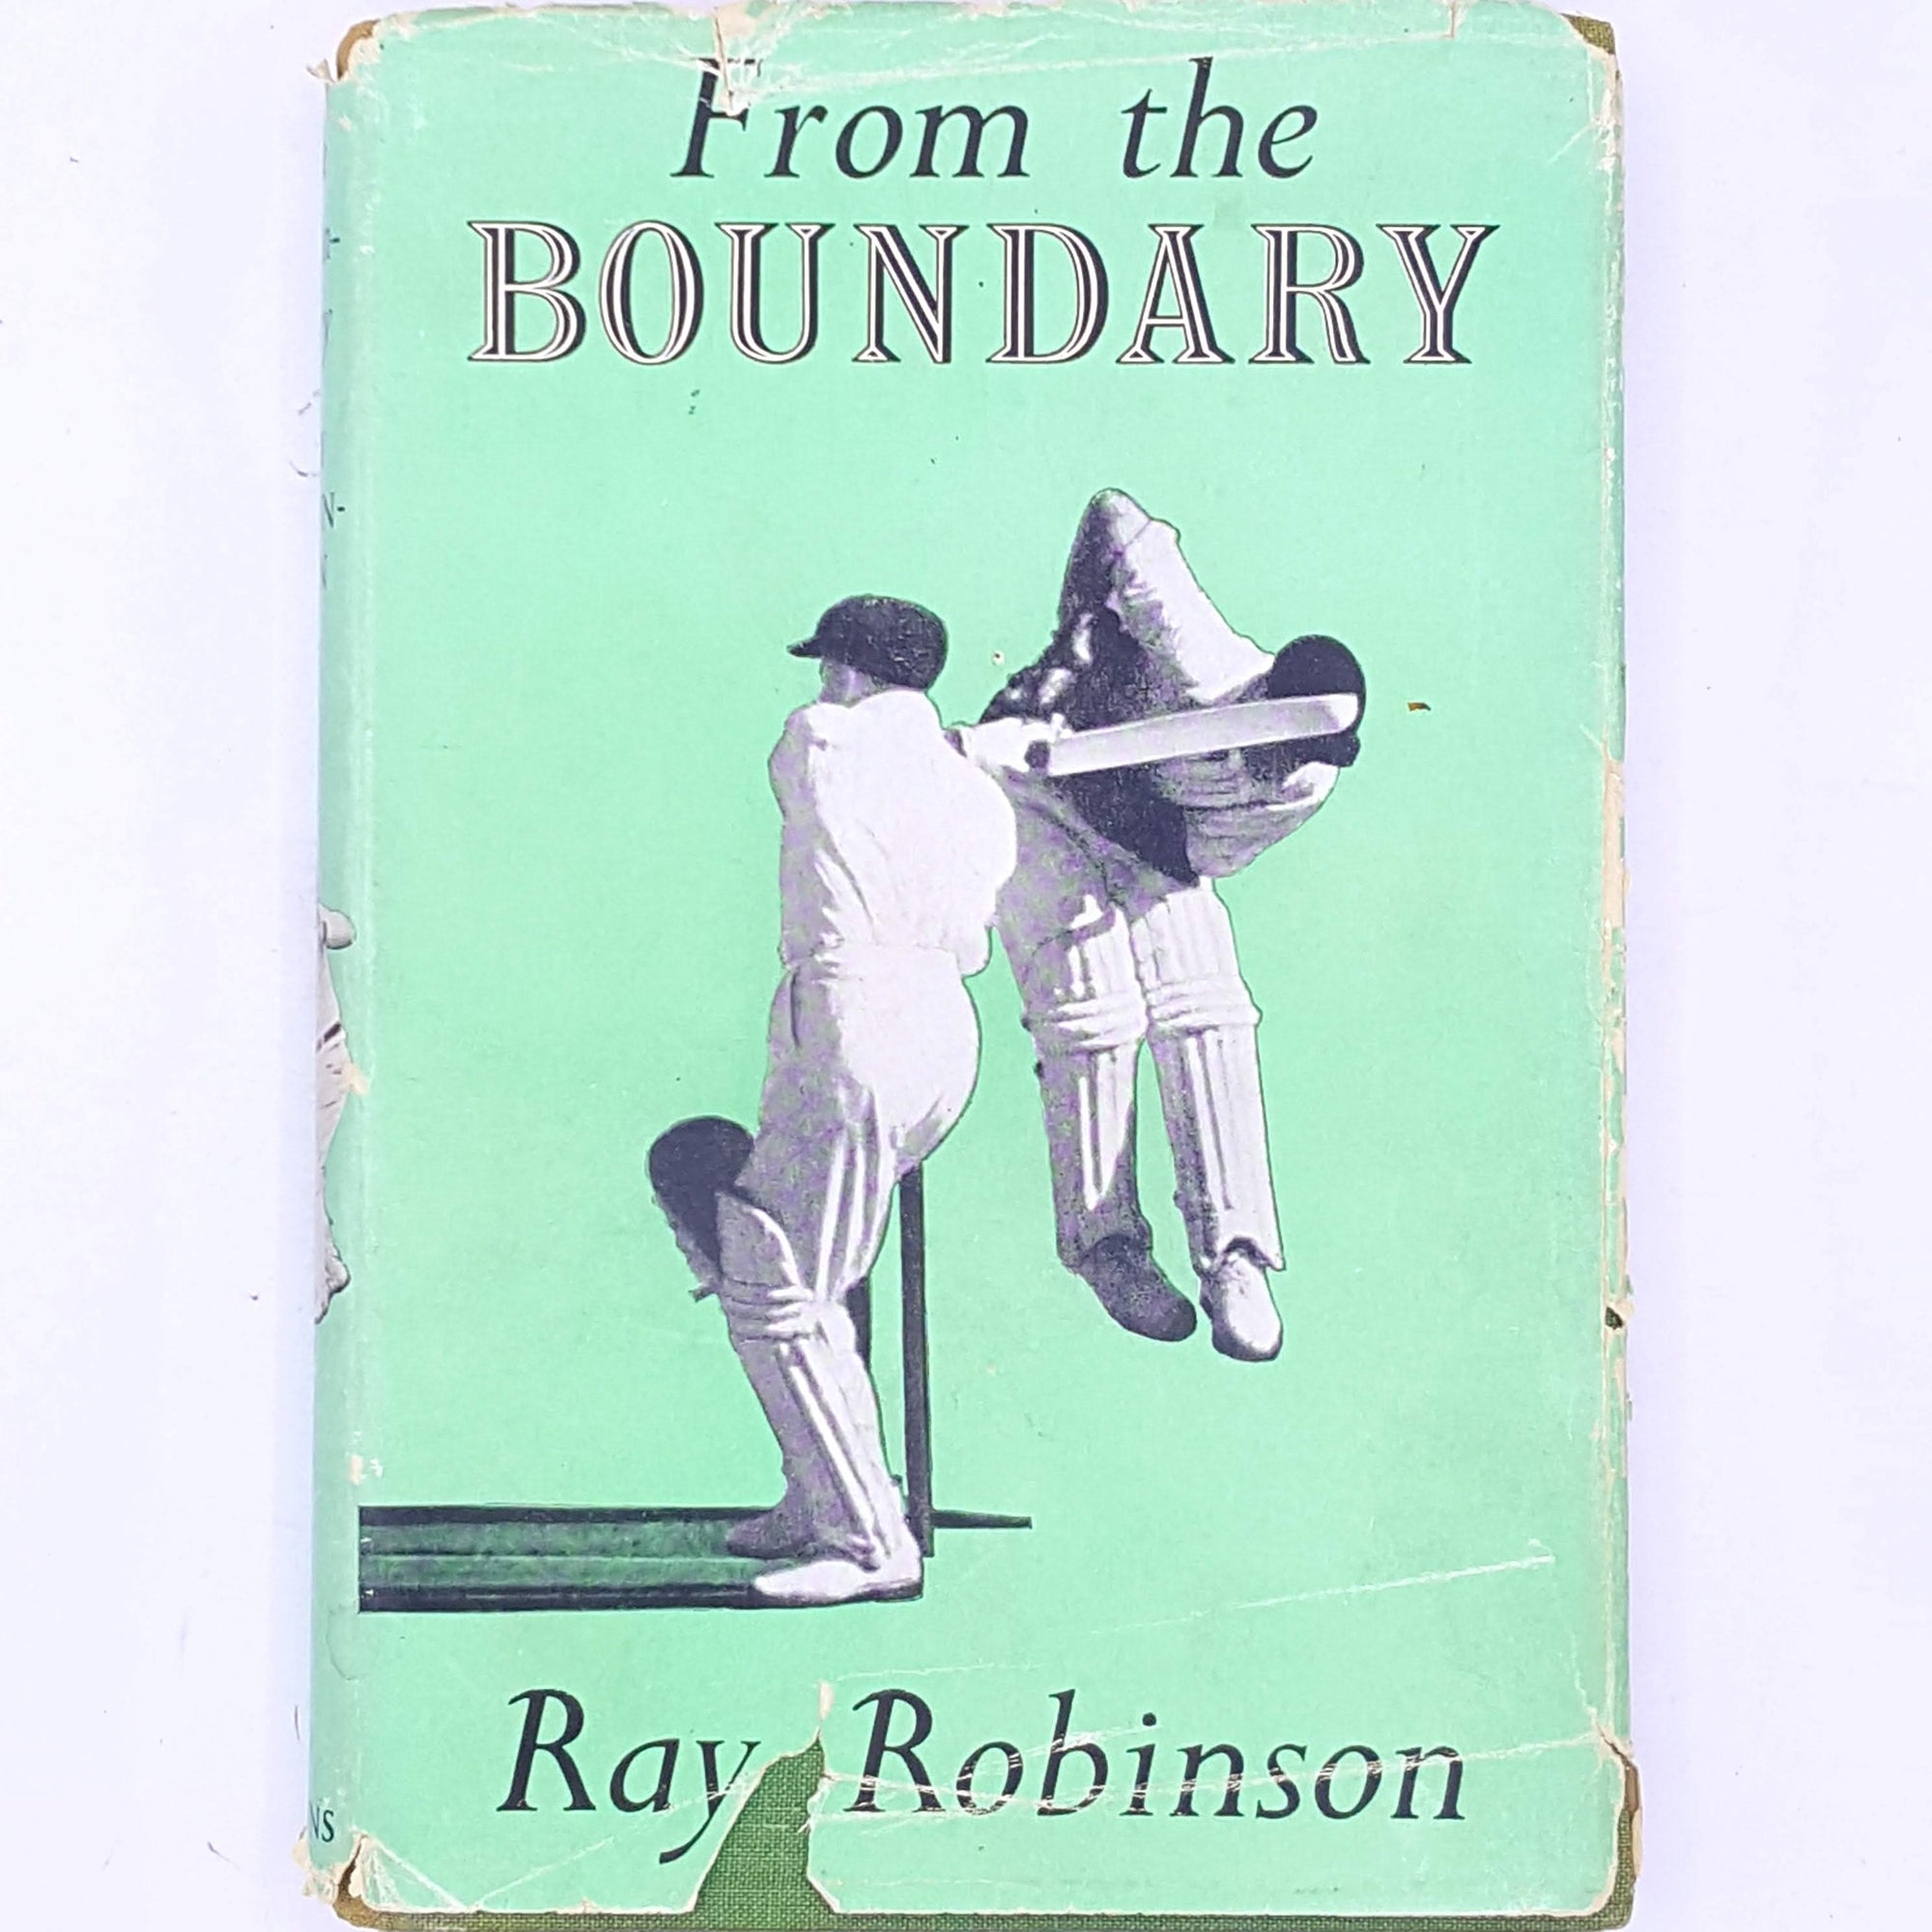 thrift-vintage-golf-golfing-sports-classic-patterned-country-house-library-from-the-boundry-decorative-antique-old-ray-robinson-books-